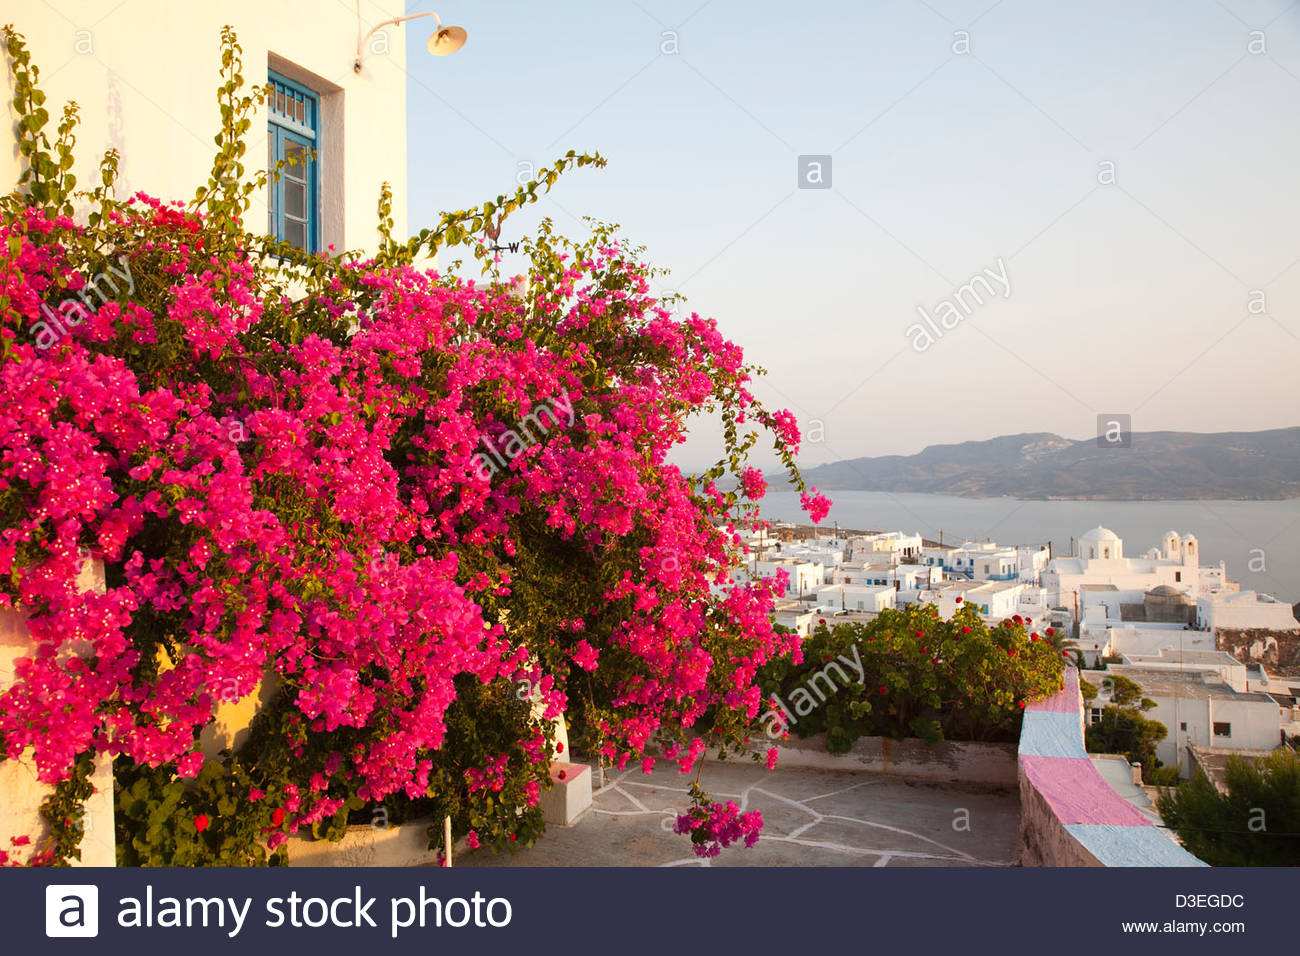 bouganville,plaka village,milos island,cyclades islands,greece - Stock Image